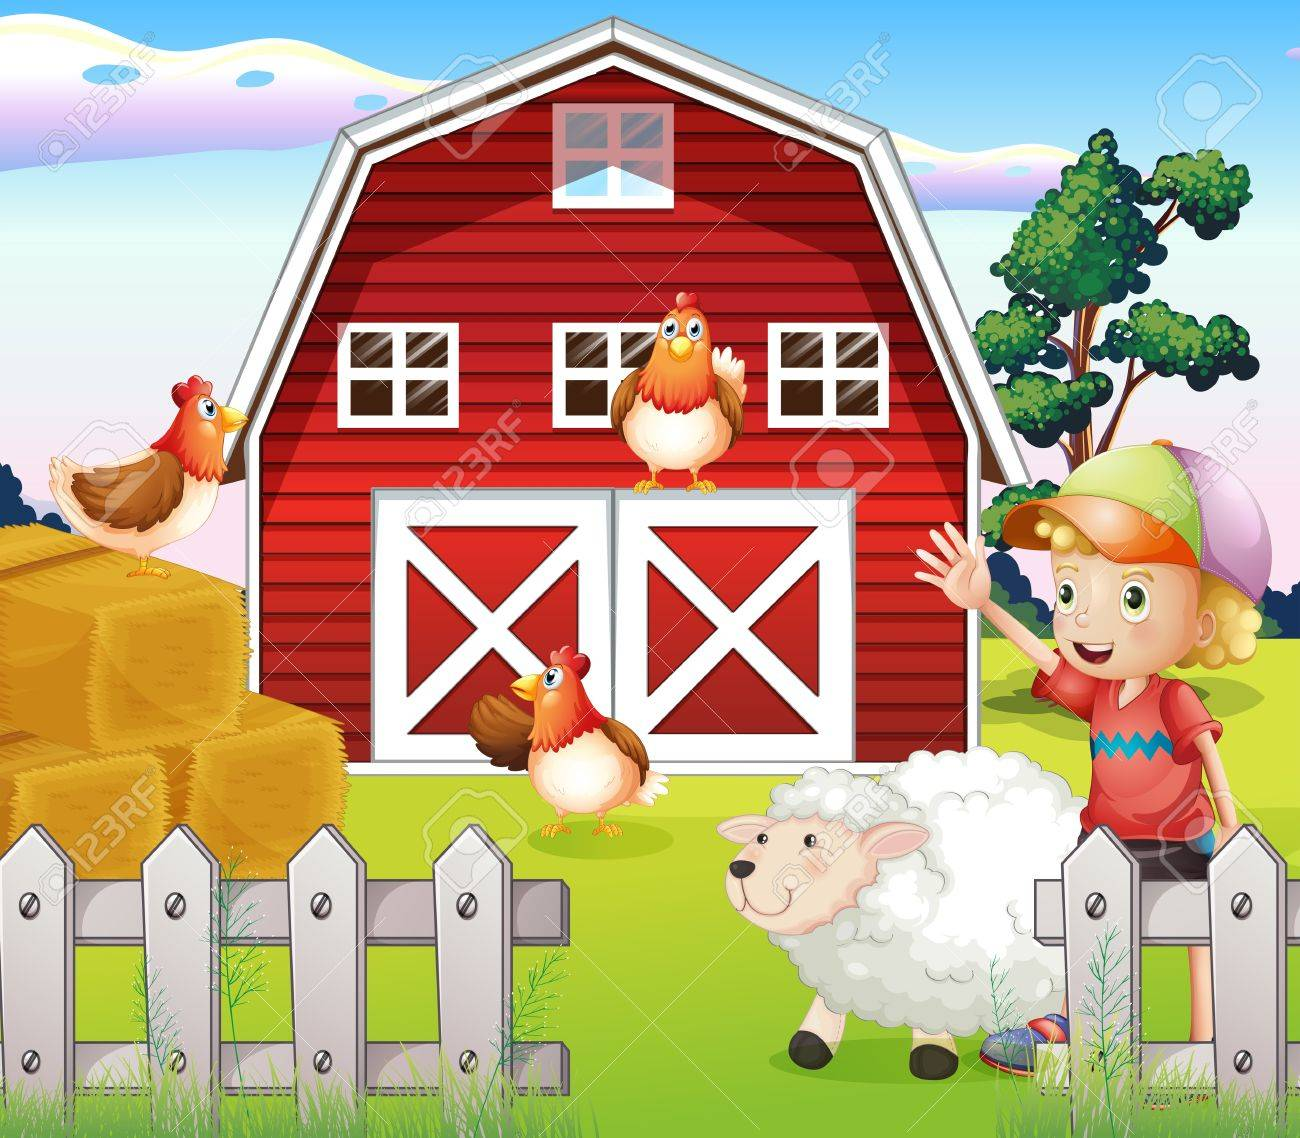 Illustration Of A Boy At The Farmhouse With Animals Royalty Free Cliparts Vectors And Stock Illustration Image 20729471